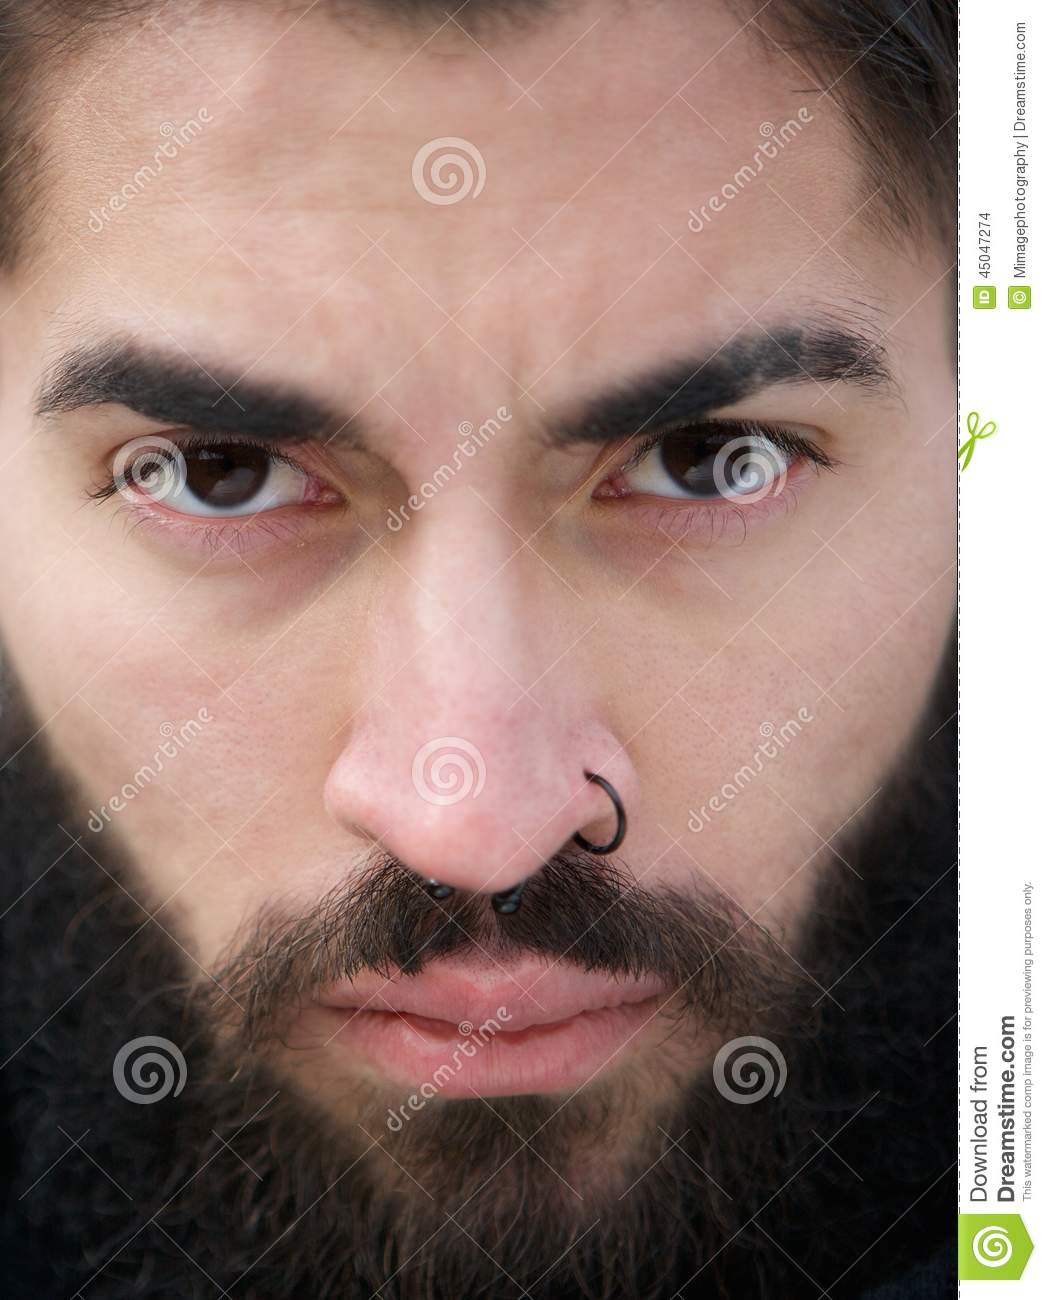 Man Face With Beard And Nose Piercing Stock Photo  Image